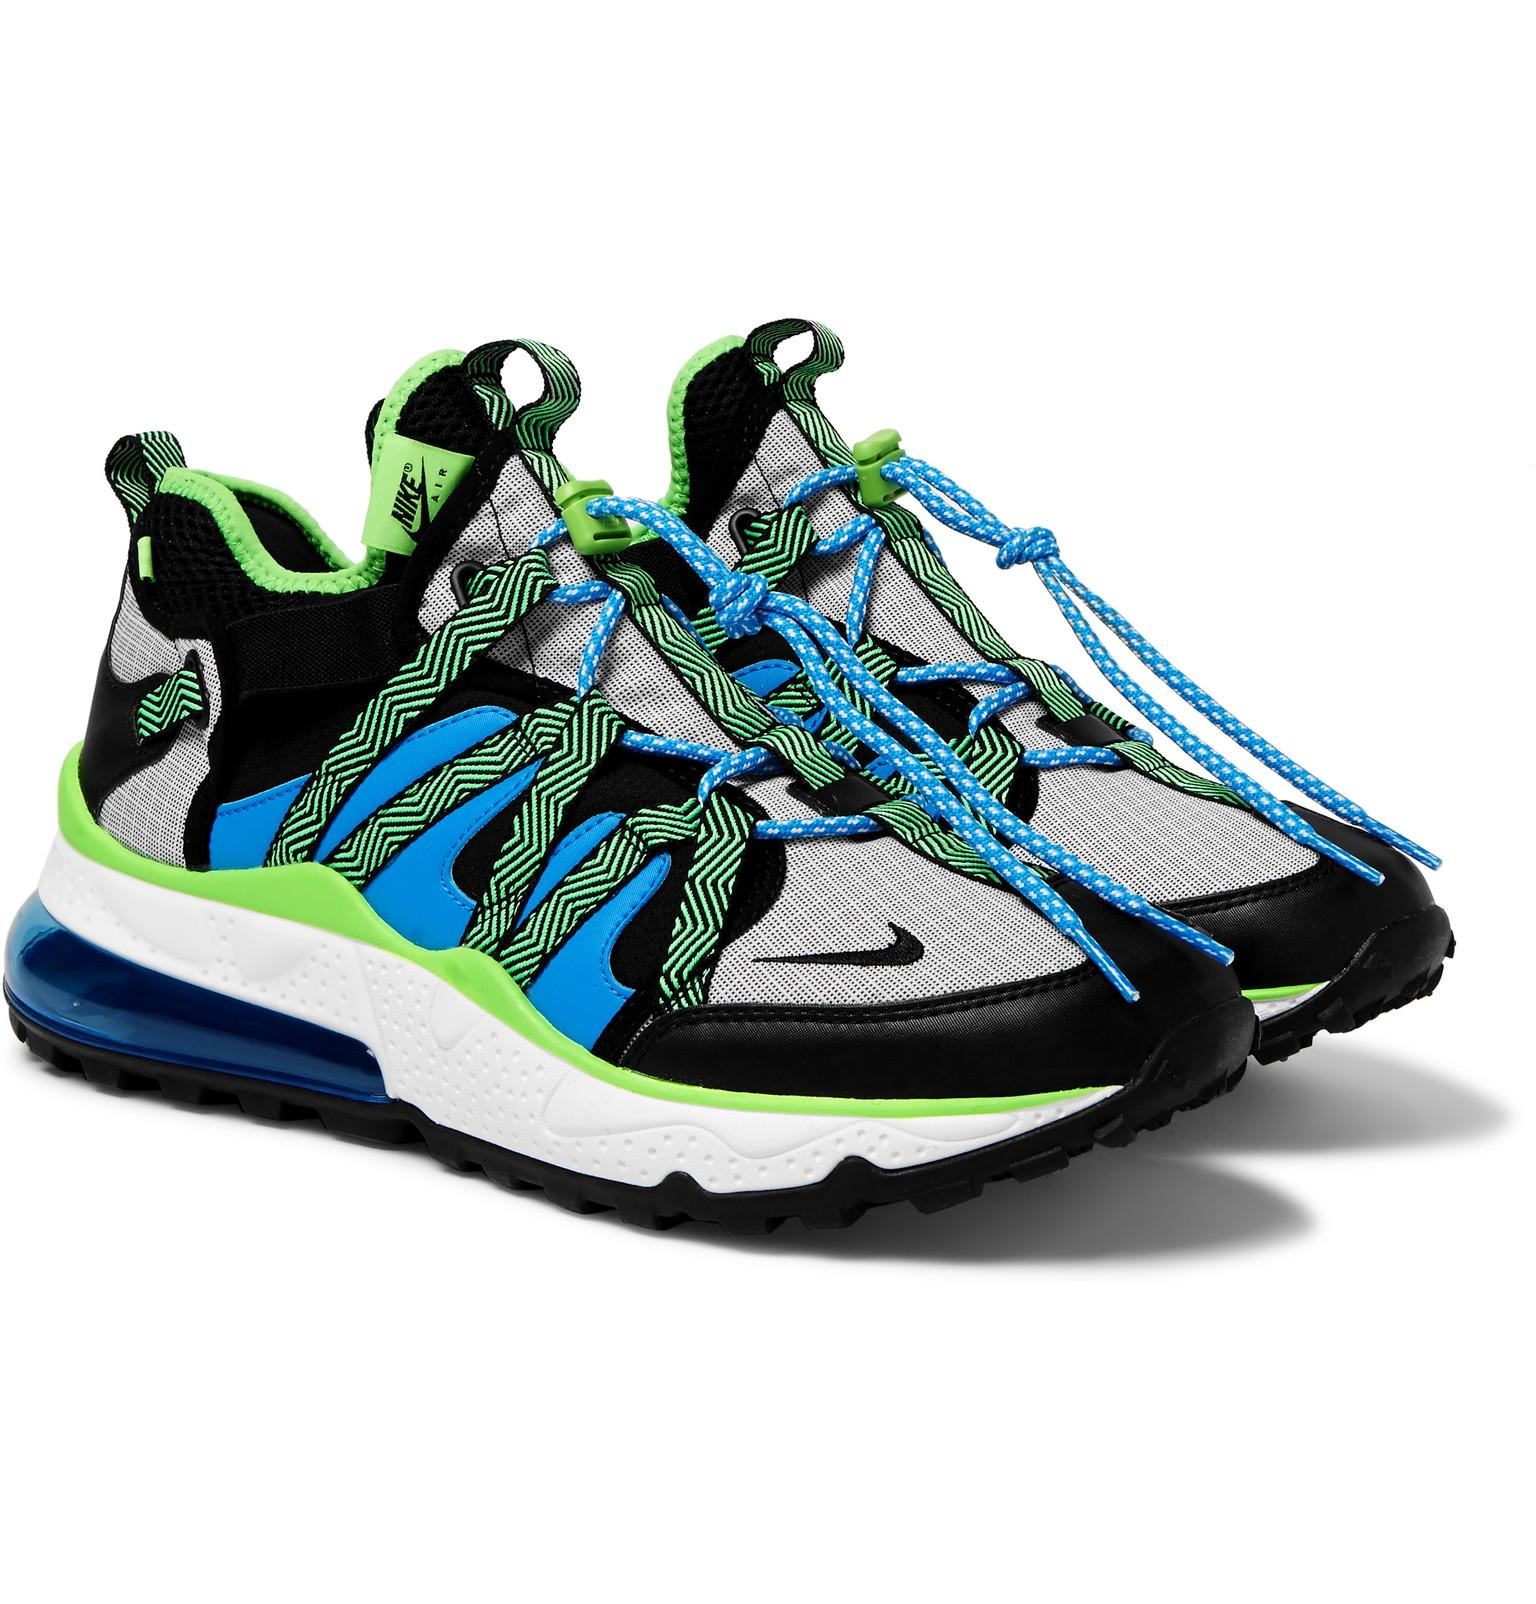 215514e9afc Nike Air Max 270 Bowfin Mesh And Nylon Sneakers in Blue for Men ...